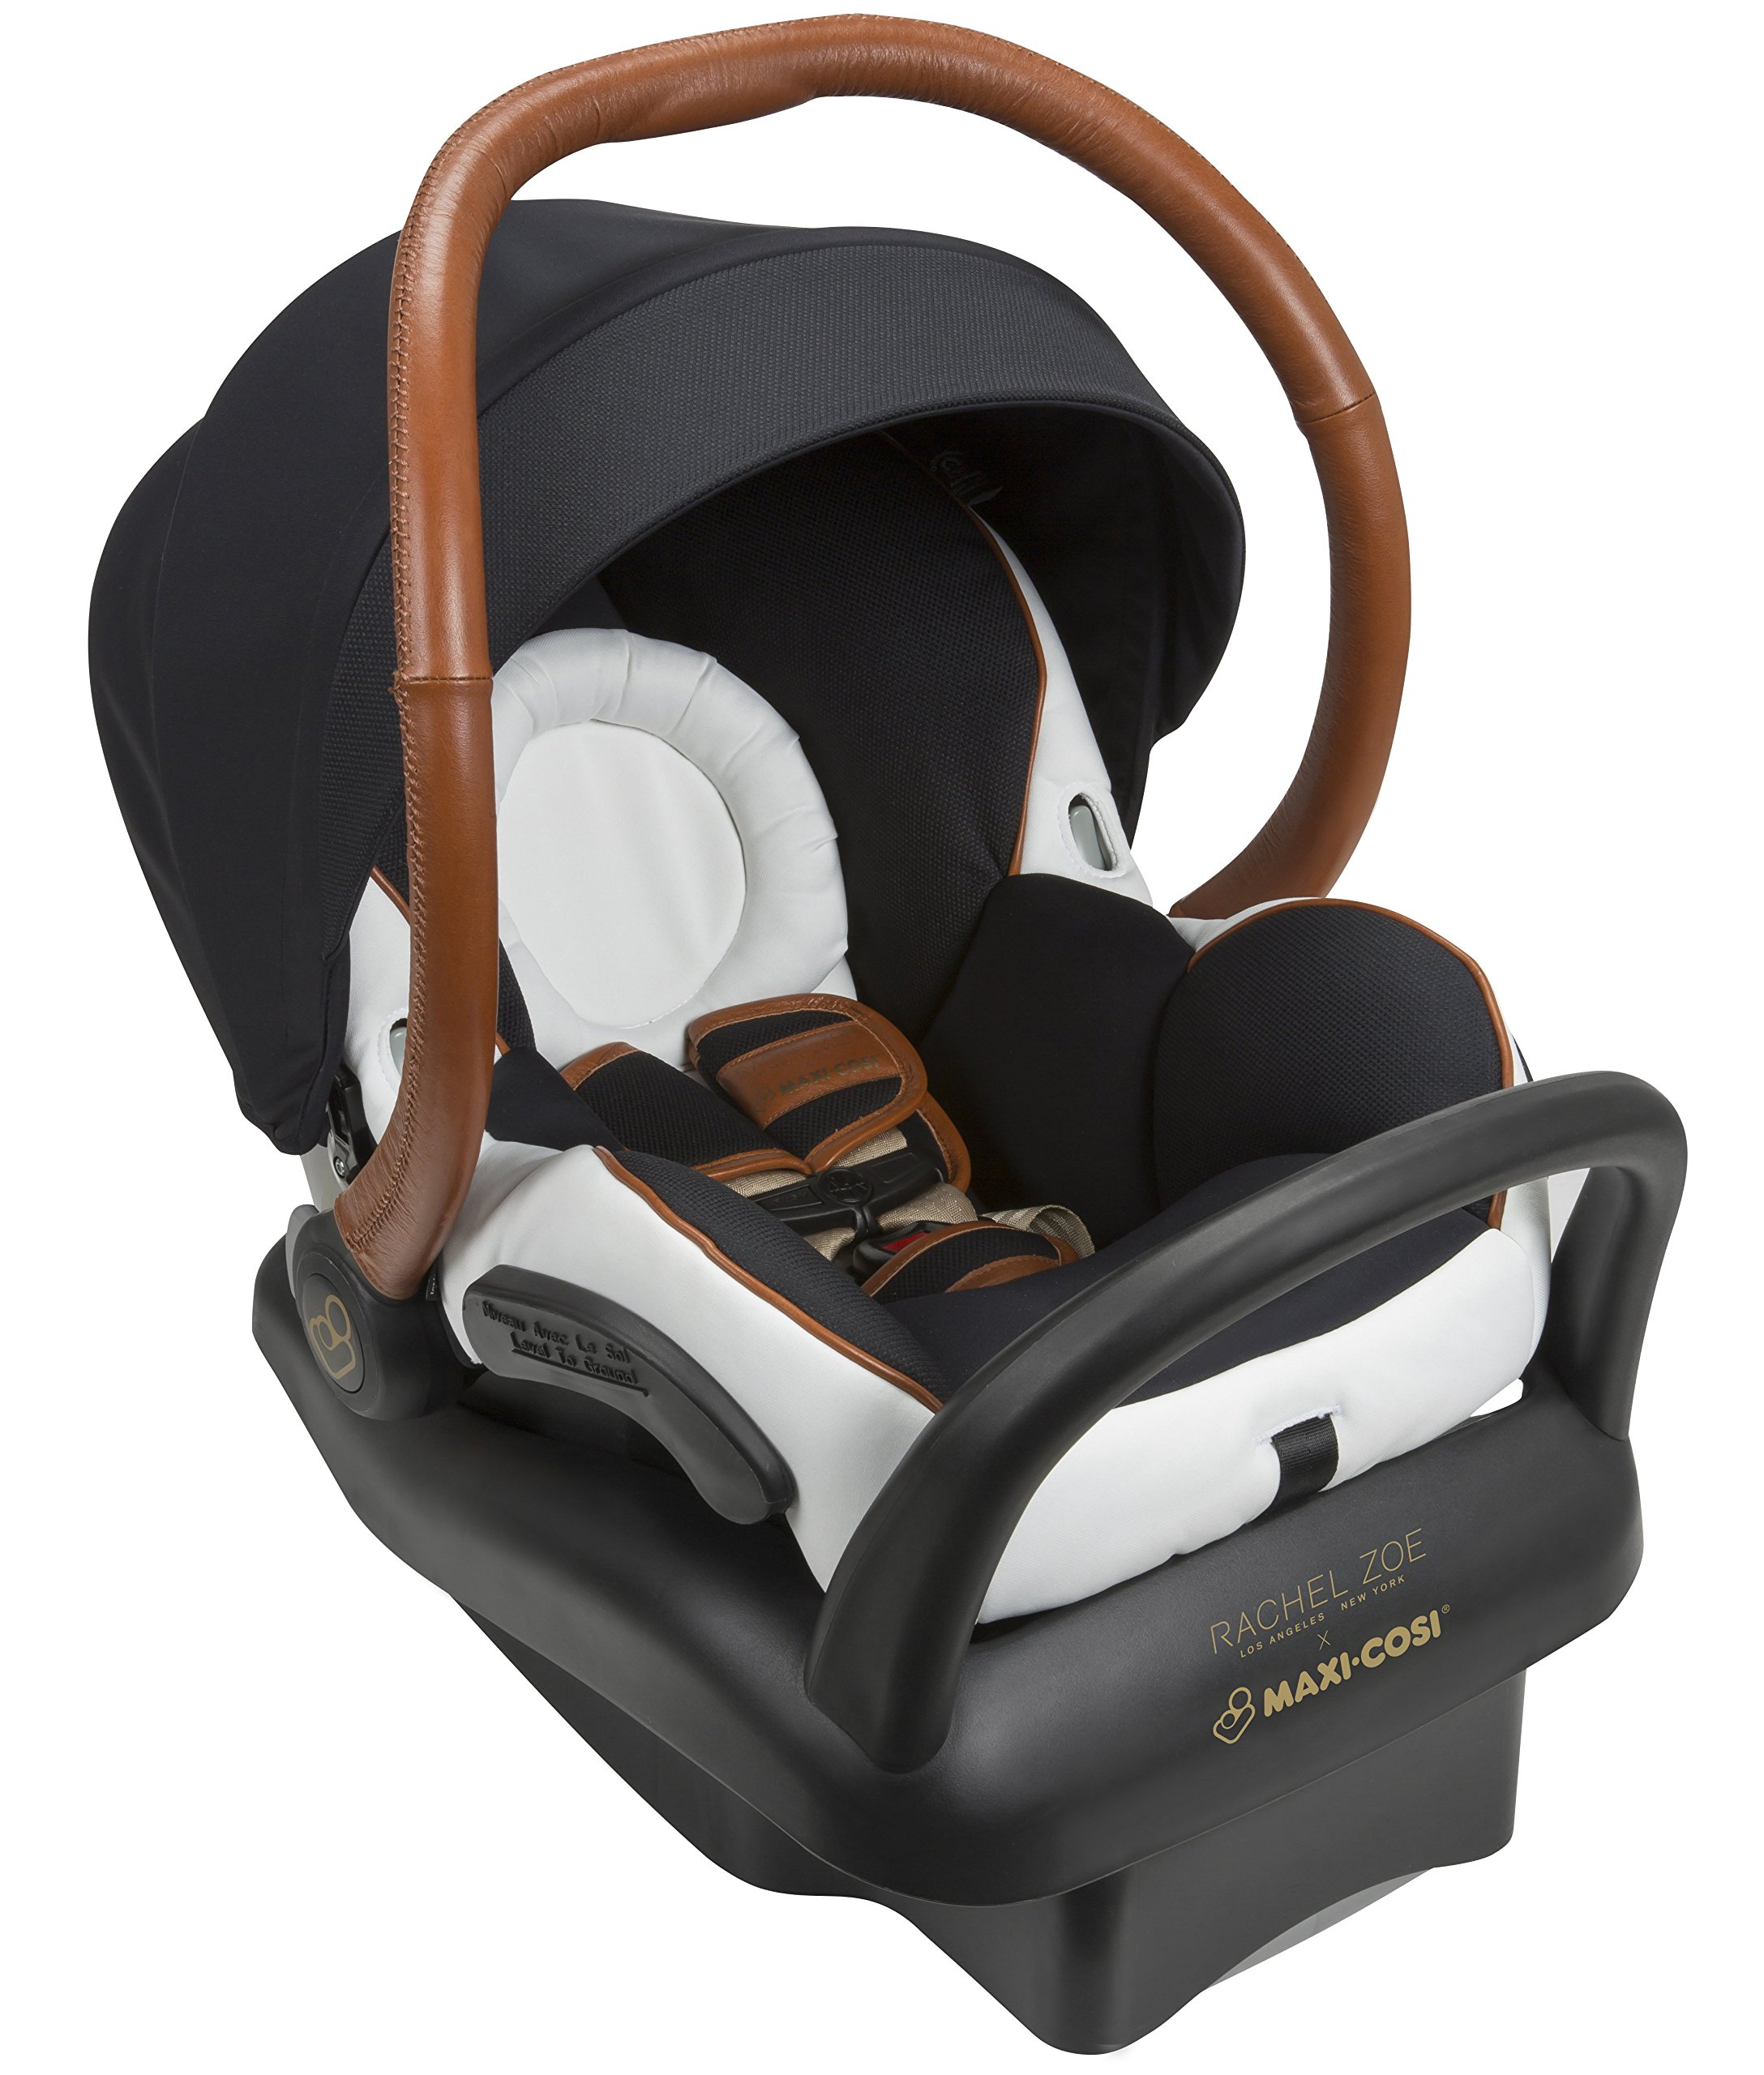 Maxi Cosi Mico Max 30 Infant Car Seat Rachel Zoe Jet Set Special Edition